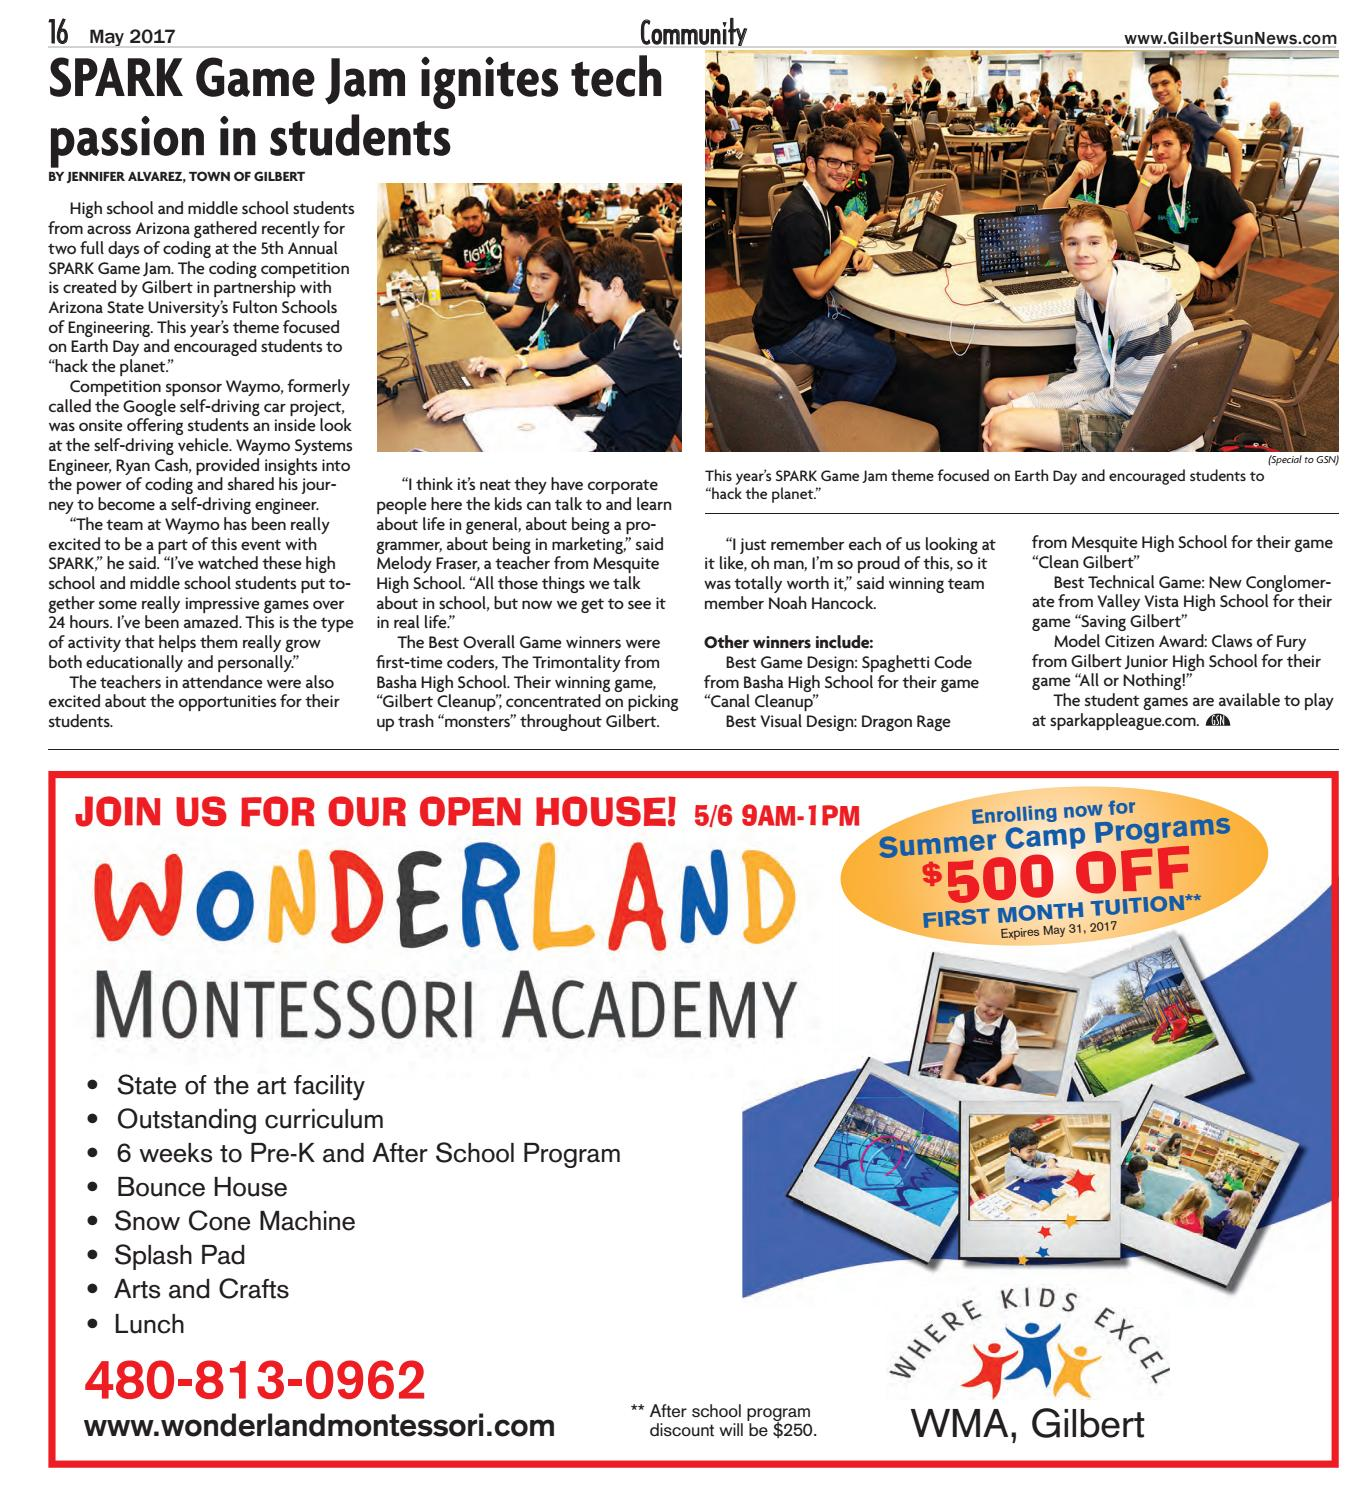 Gilbert Sun News - May 2017 by Times Media Group - issuu